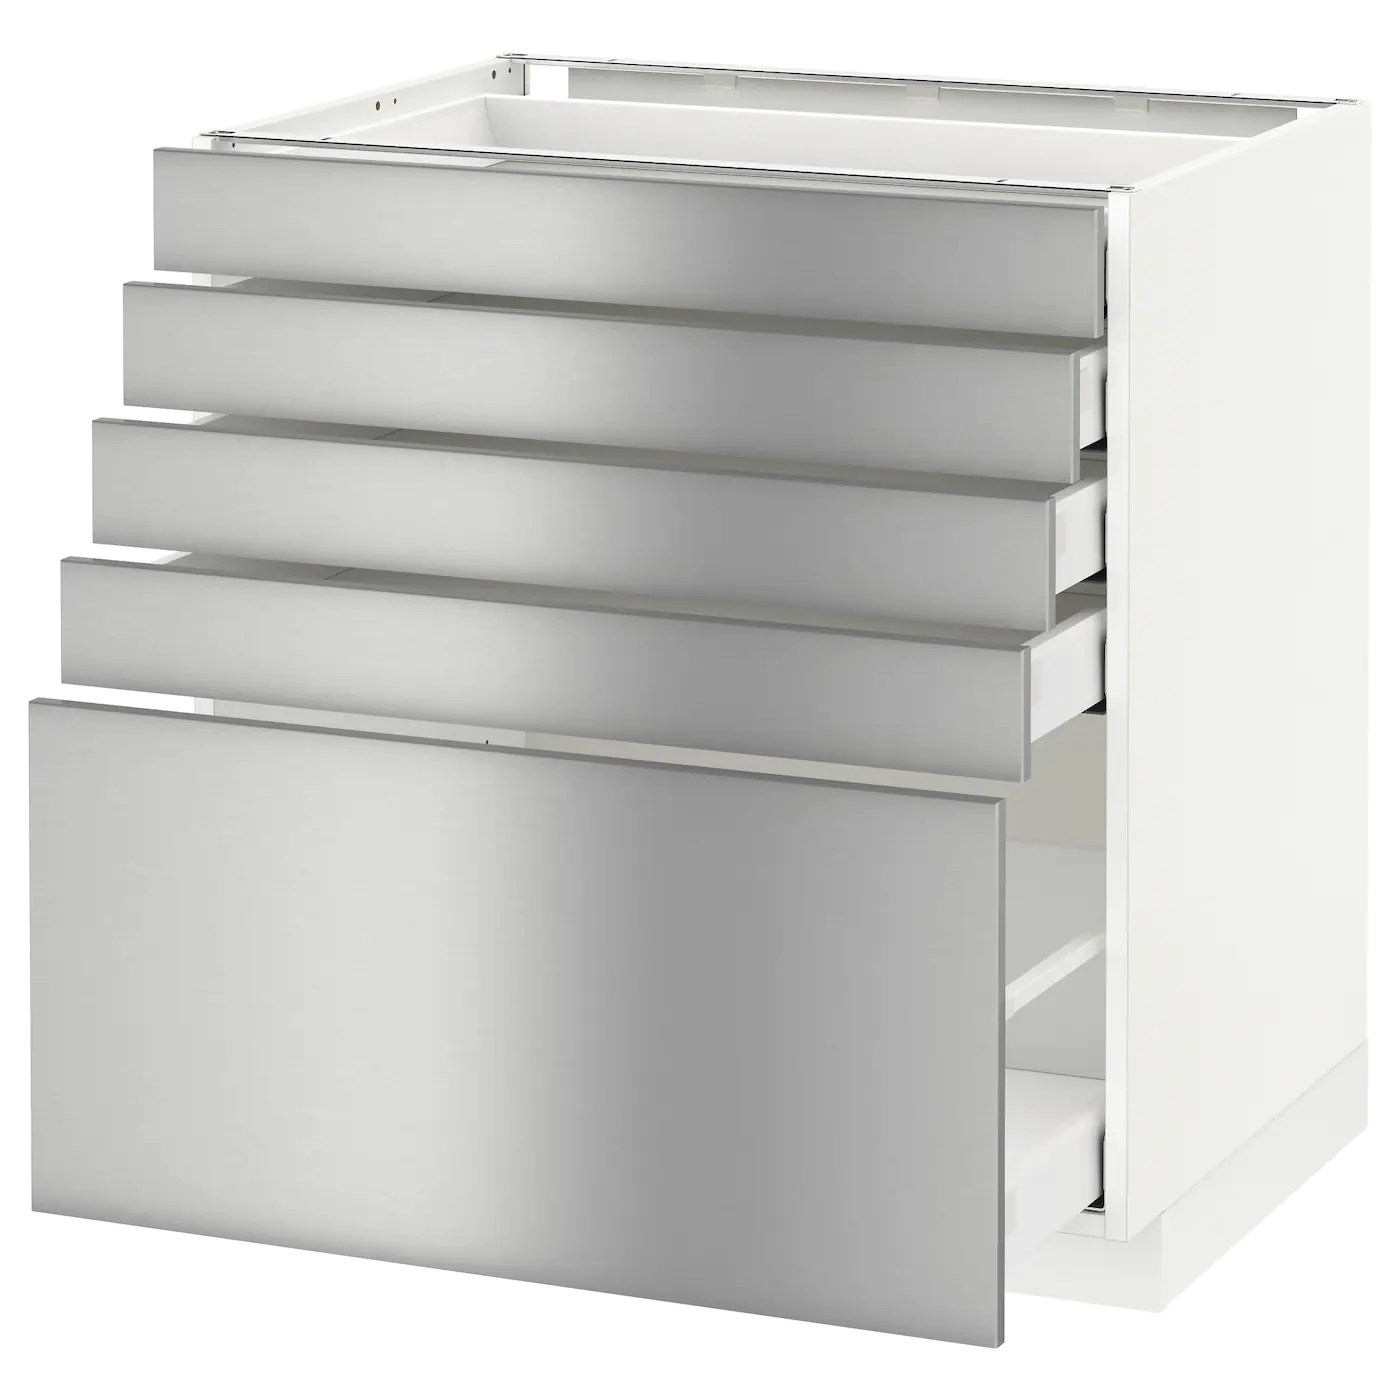 5 drawer kitchen base cabinet high chair for counter metod maximera with drawers white grevsta